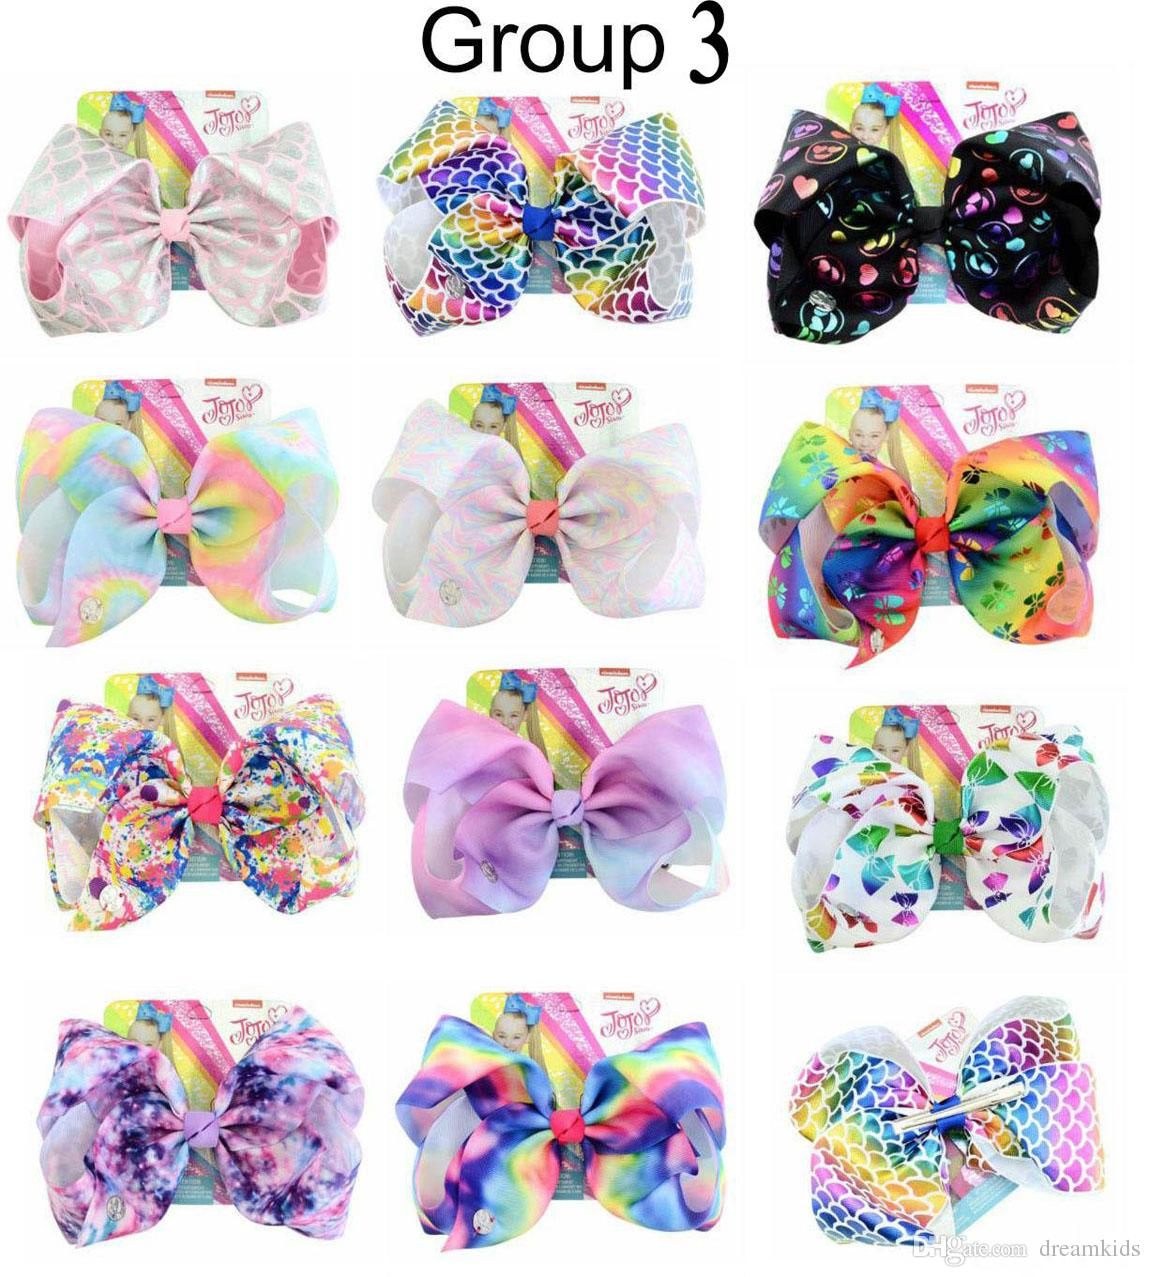 "8 Inch""jojo Girls Siwa Unicorn Collection Coral Colorful Hairpin Large Hair Bows Hair Accessories For Girls"